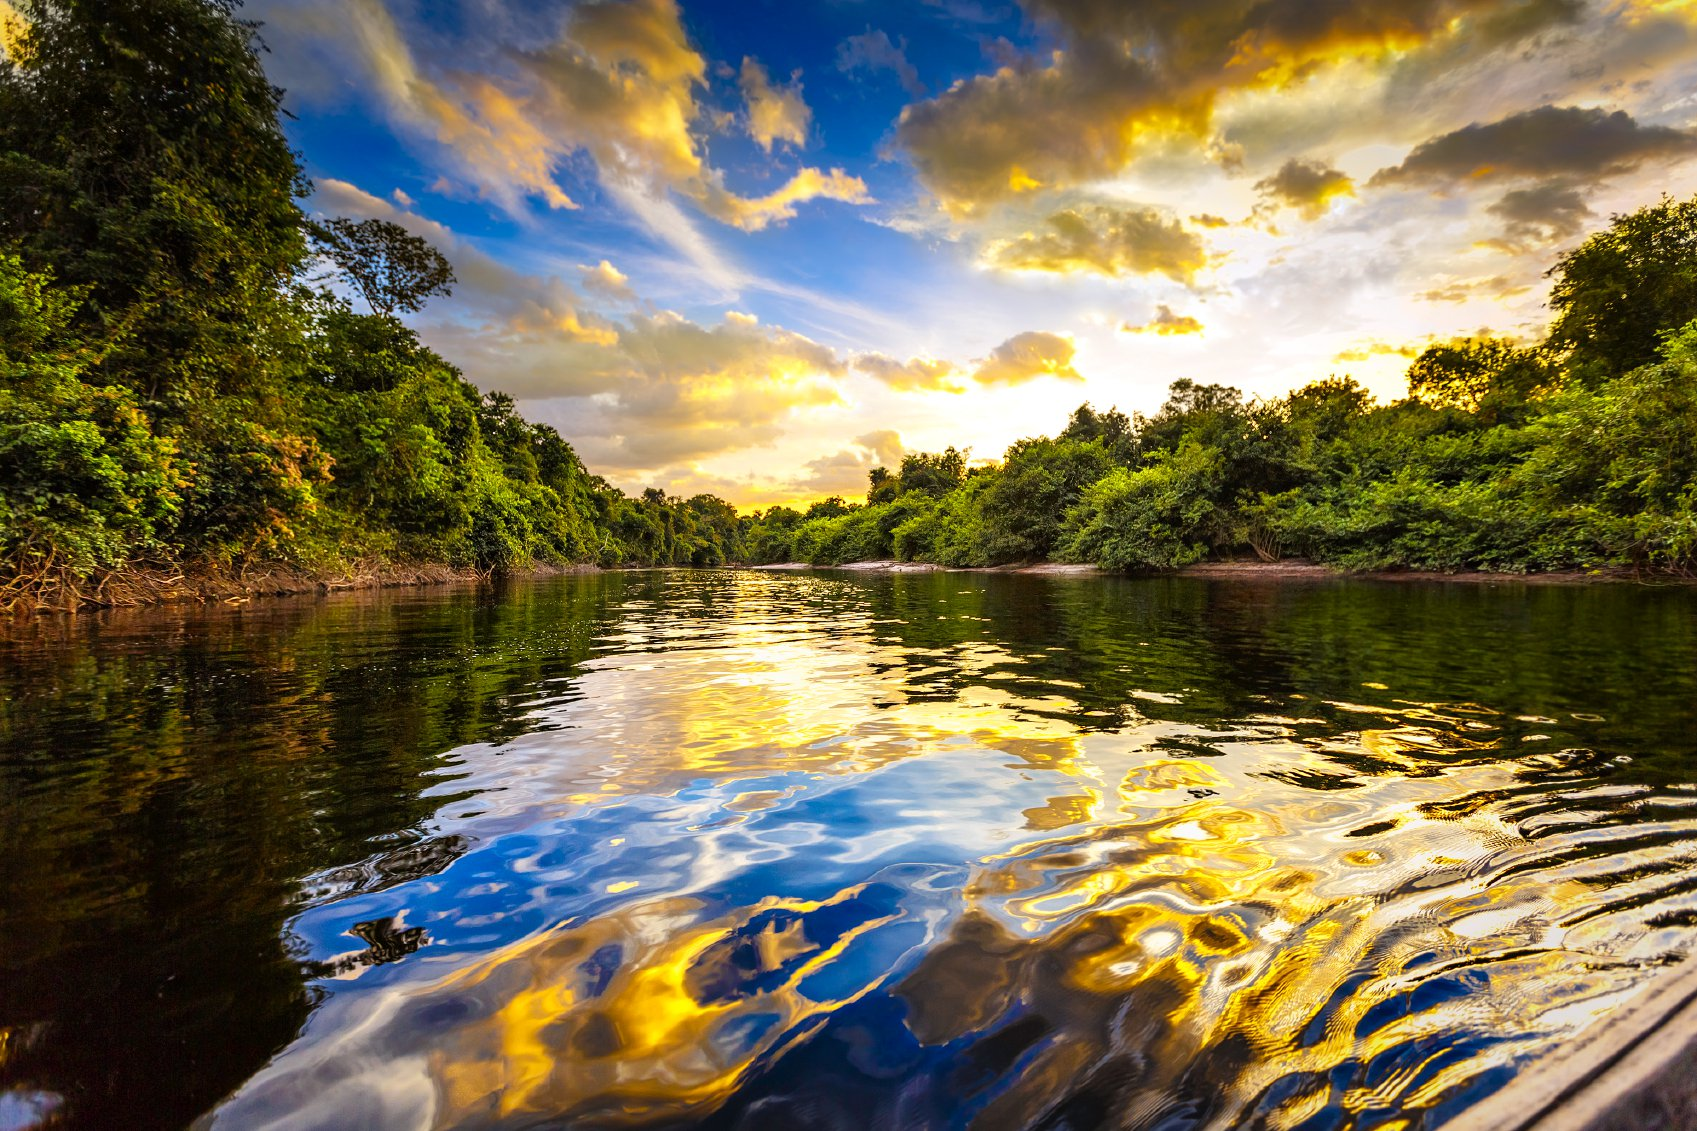 A tip for an unforgettable trip in the Amazon is to open your mind and put your worries aside. It is necessary to emerge in this experience without things from the outside making you lose focus on what will be shown in that destination.